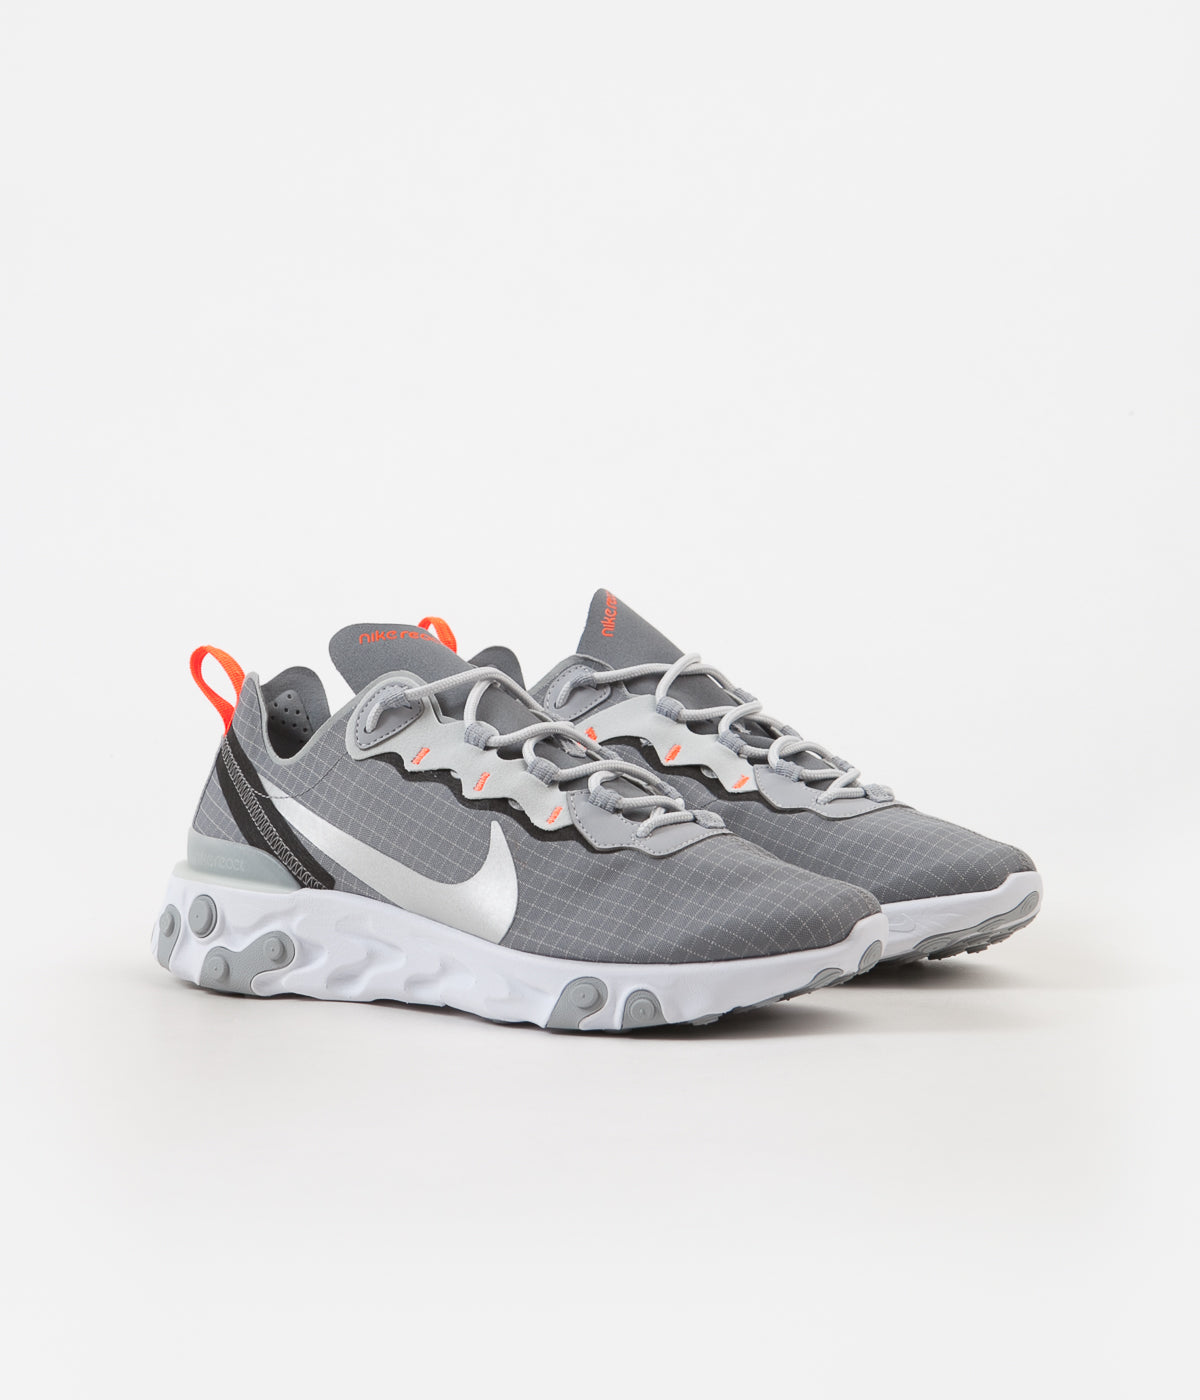 Nike React Element 55 Shoes - Cool Grey